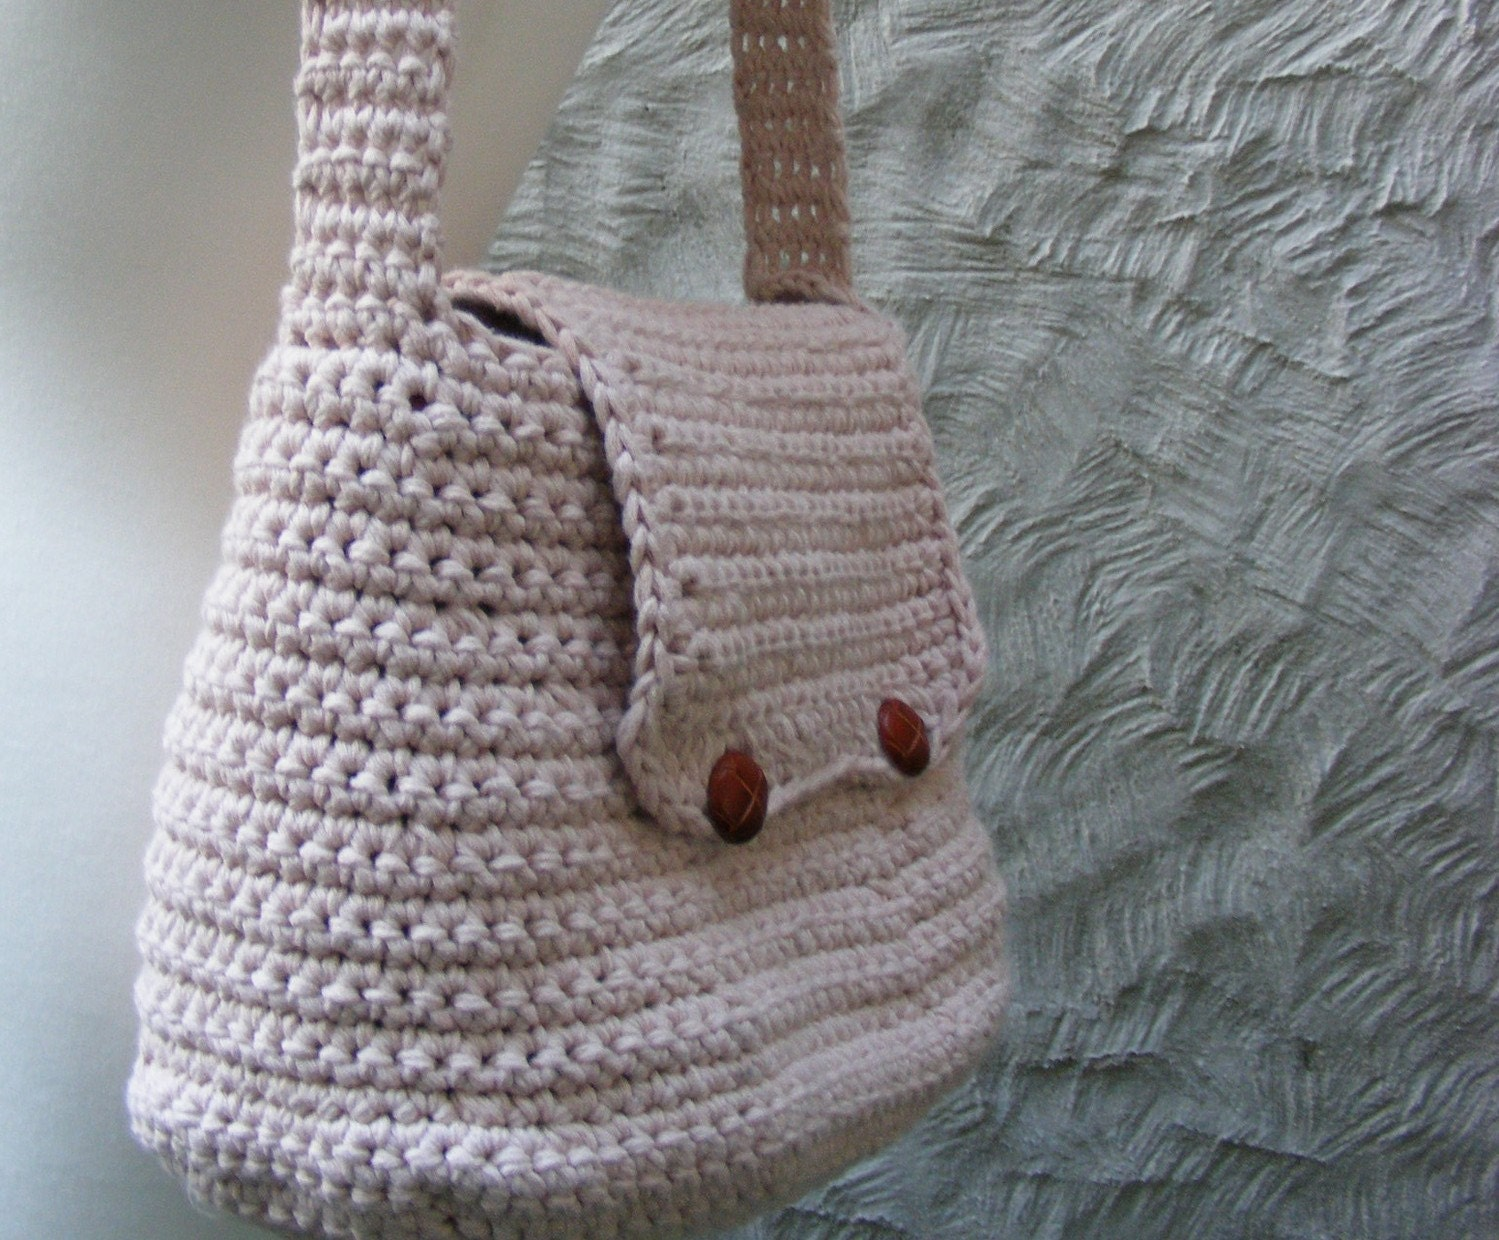 Beginners Crochet Bag Patterns : Crochet Patterns For Beginners Bag images